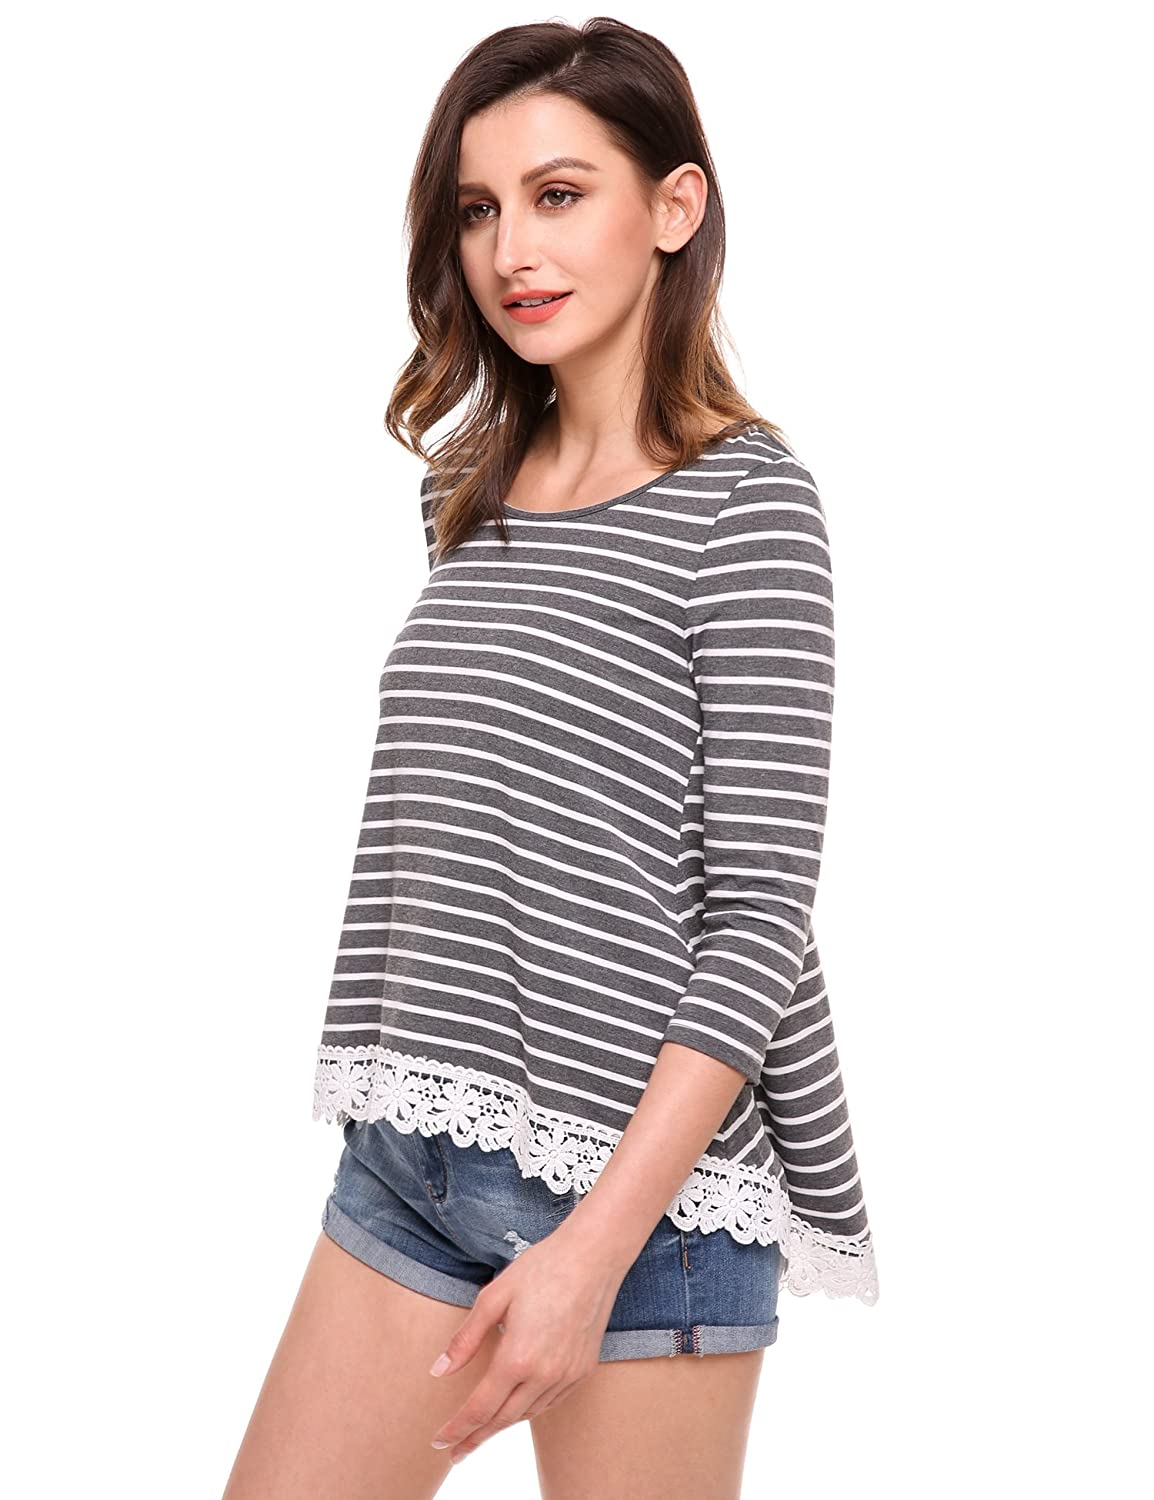 Meaneor Women's O Neck 3/4 Sleeve Casual Loose Striped Cotton Tunic Tops AMH010642